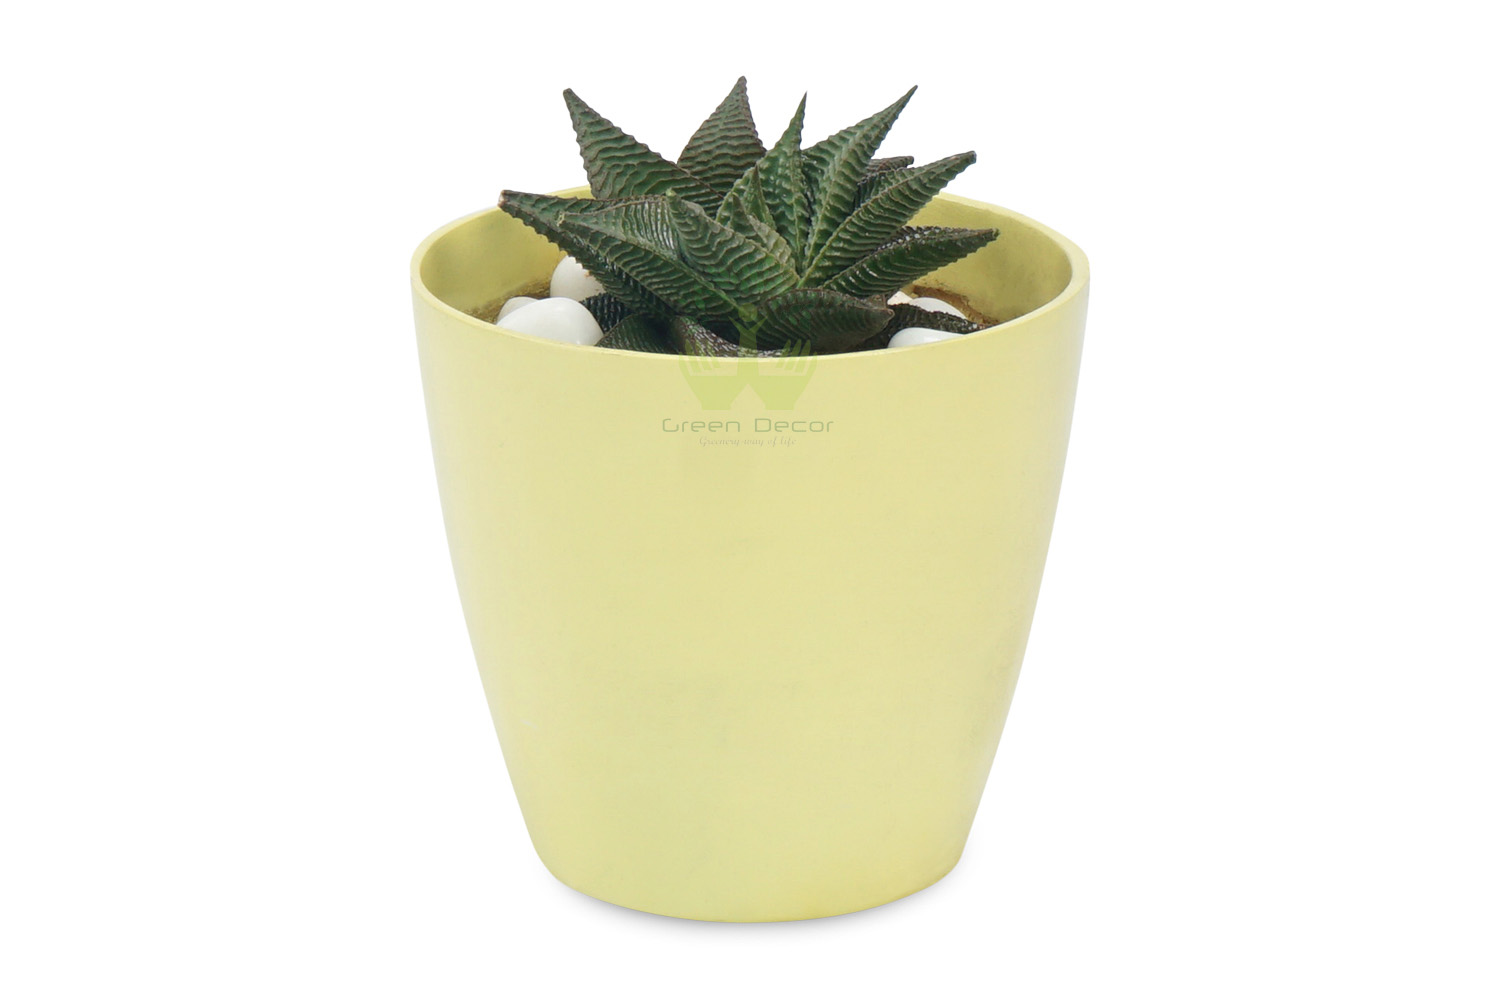 Buy Haworthia reinwardti Plants , White Pots and seeds in Delhi NCR by the best online nursery shop Greendecor.